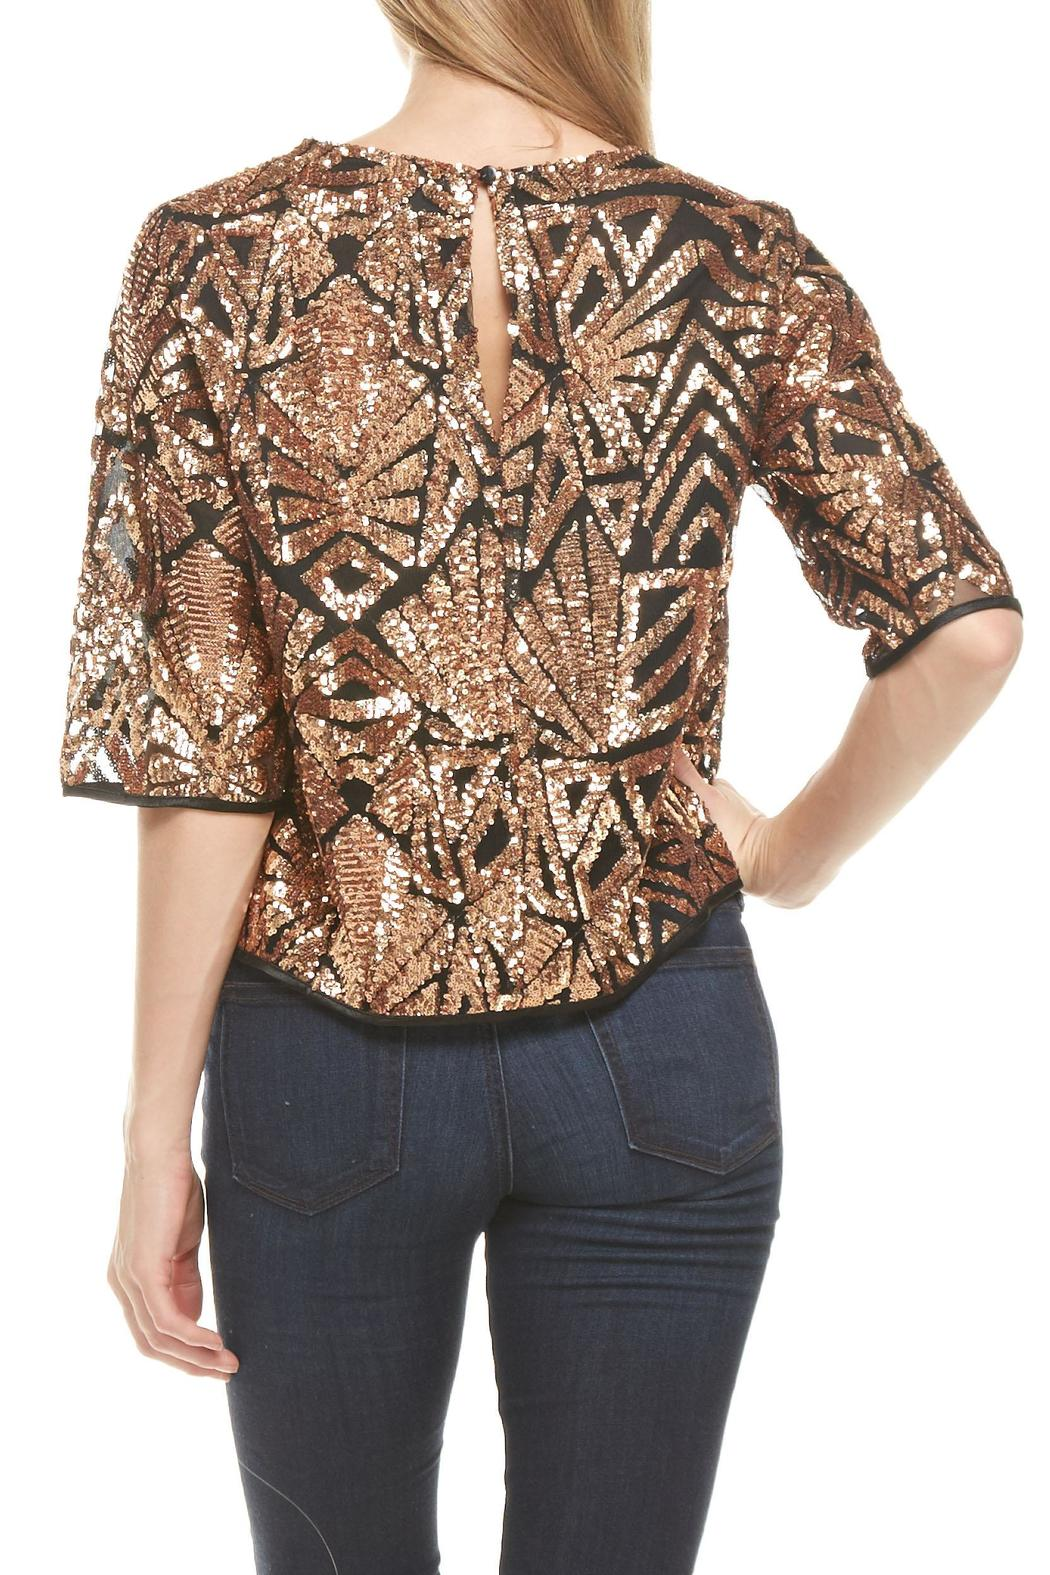 Everly Rose-Gold Sequins Top - Side Cropped Image